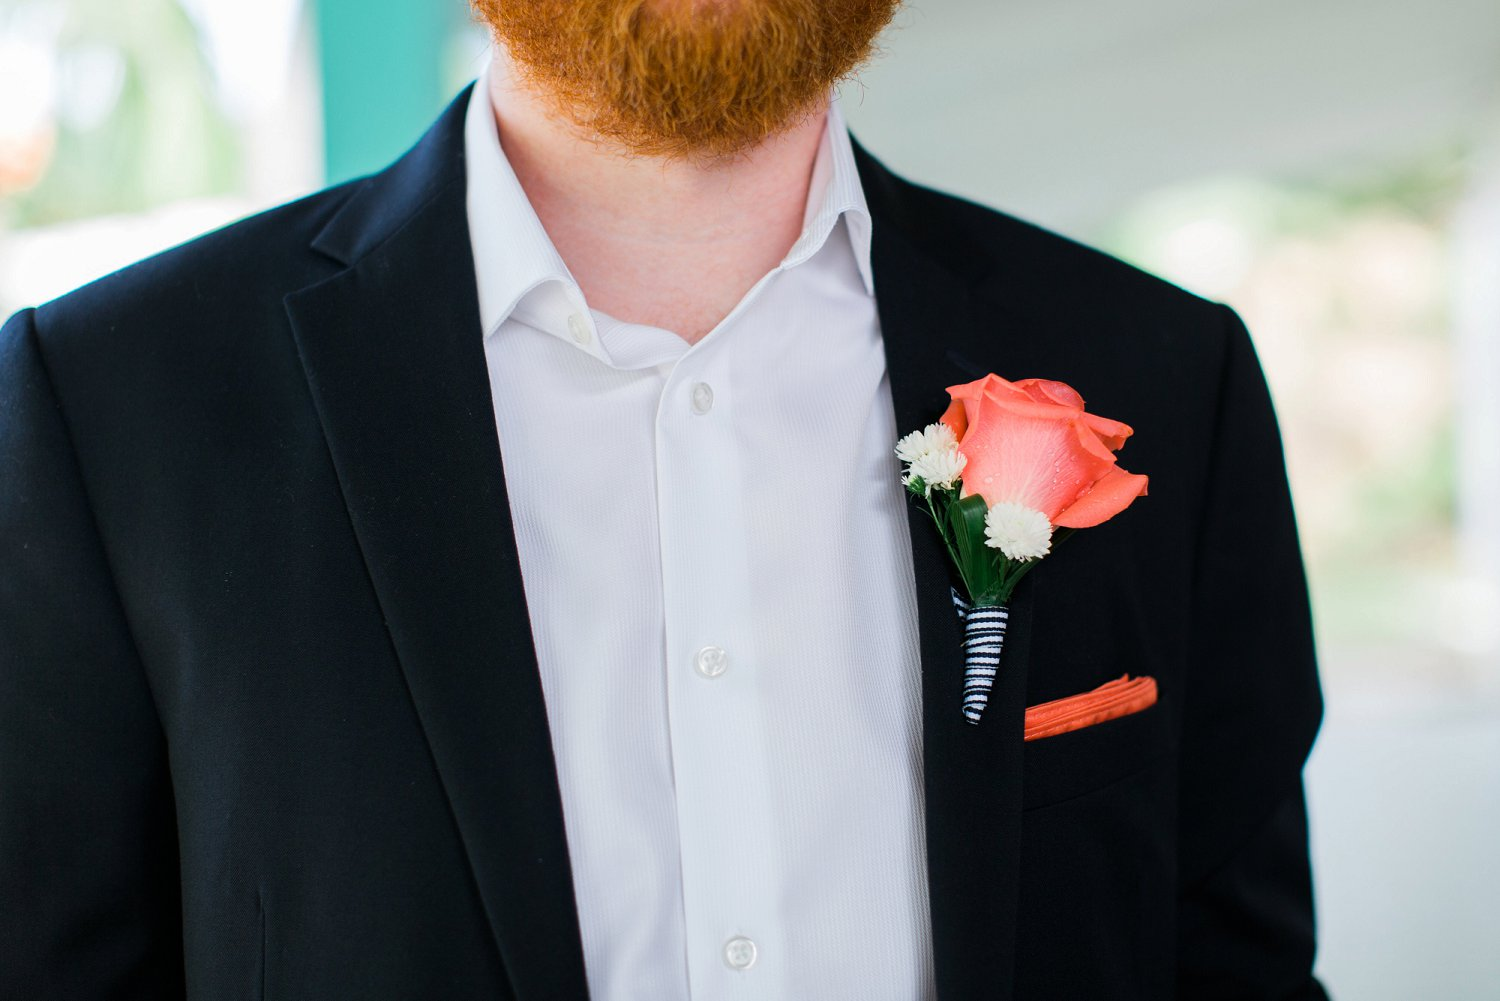 Coral boutonniere with blue and white striped ribbon and navy blue suit for groom for destination beach wedding.